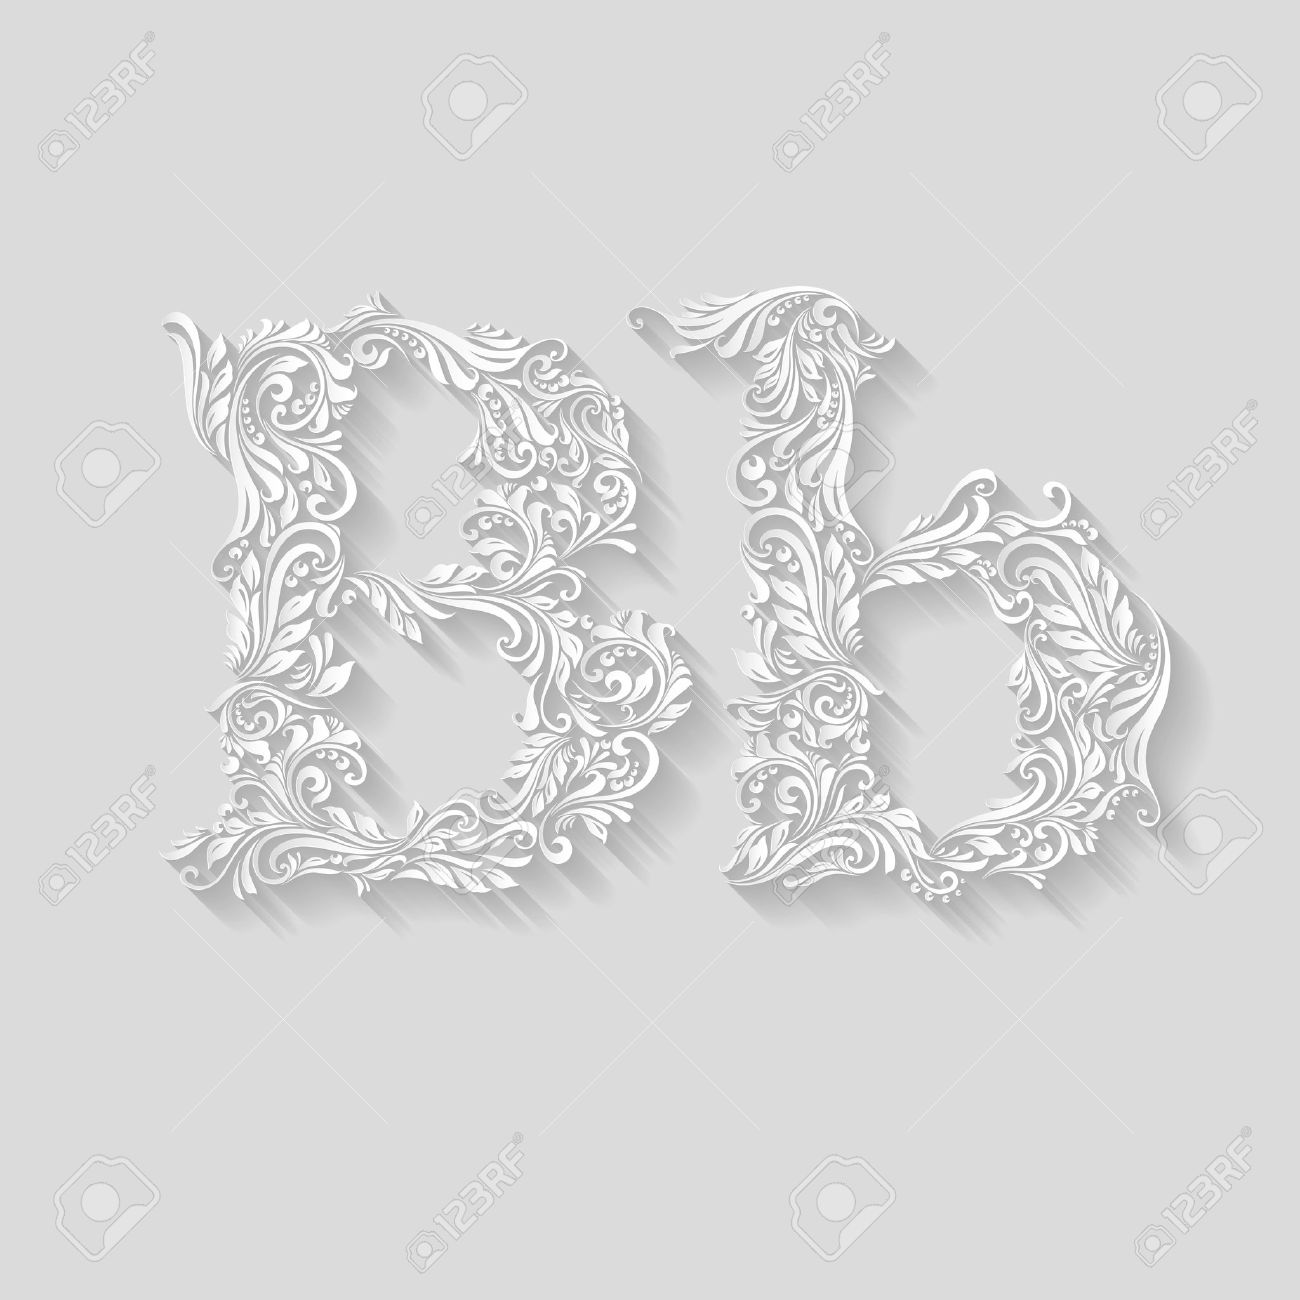 Upper and lowercase b letter clipart clip art library Handsomely Decorated Letter B In Upper And Lower Case On Gray ... clip art library